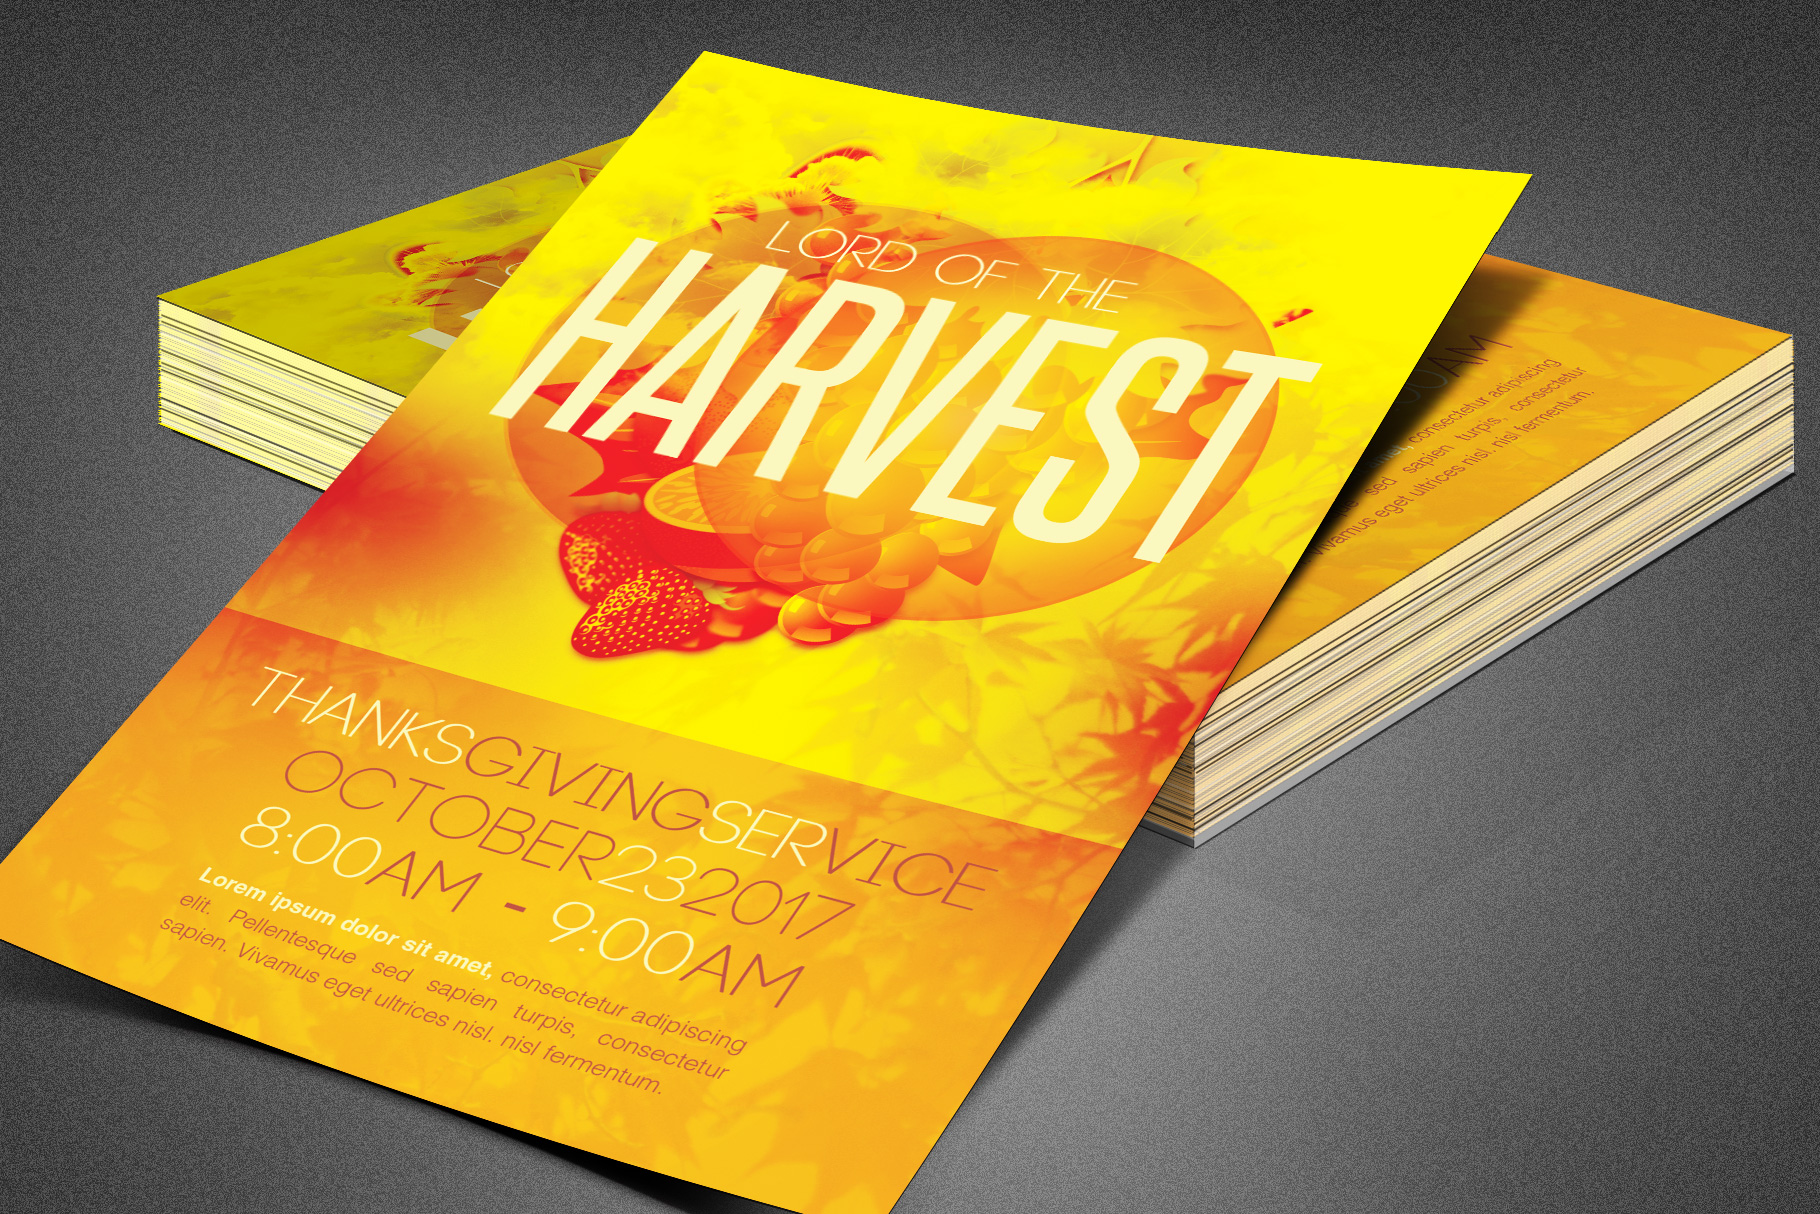 Lord of the Harvest Church Flyer example image 2